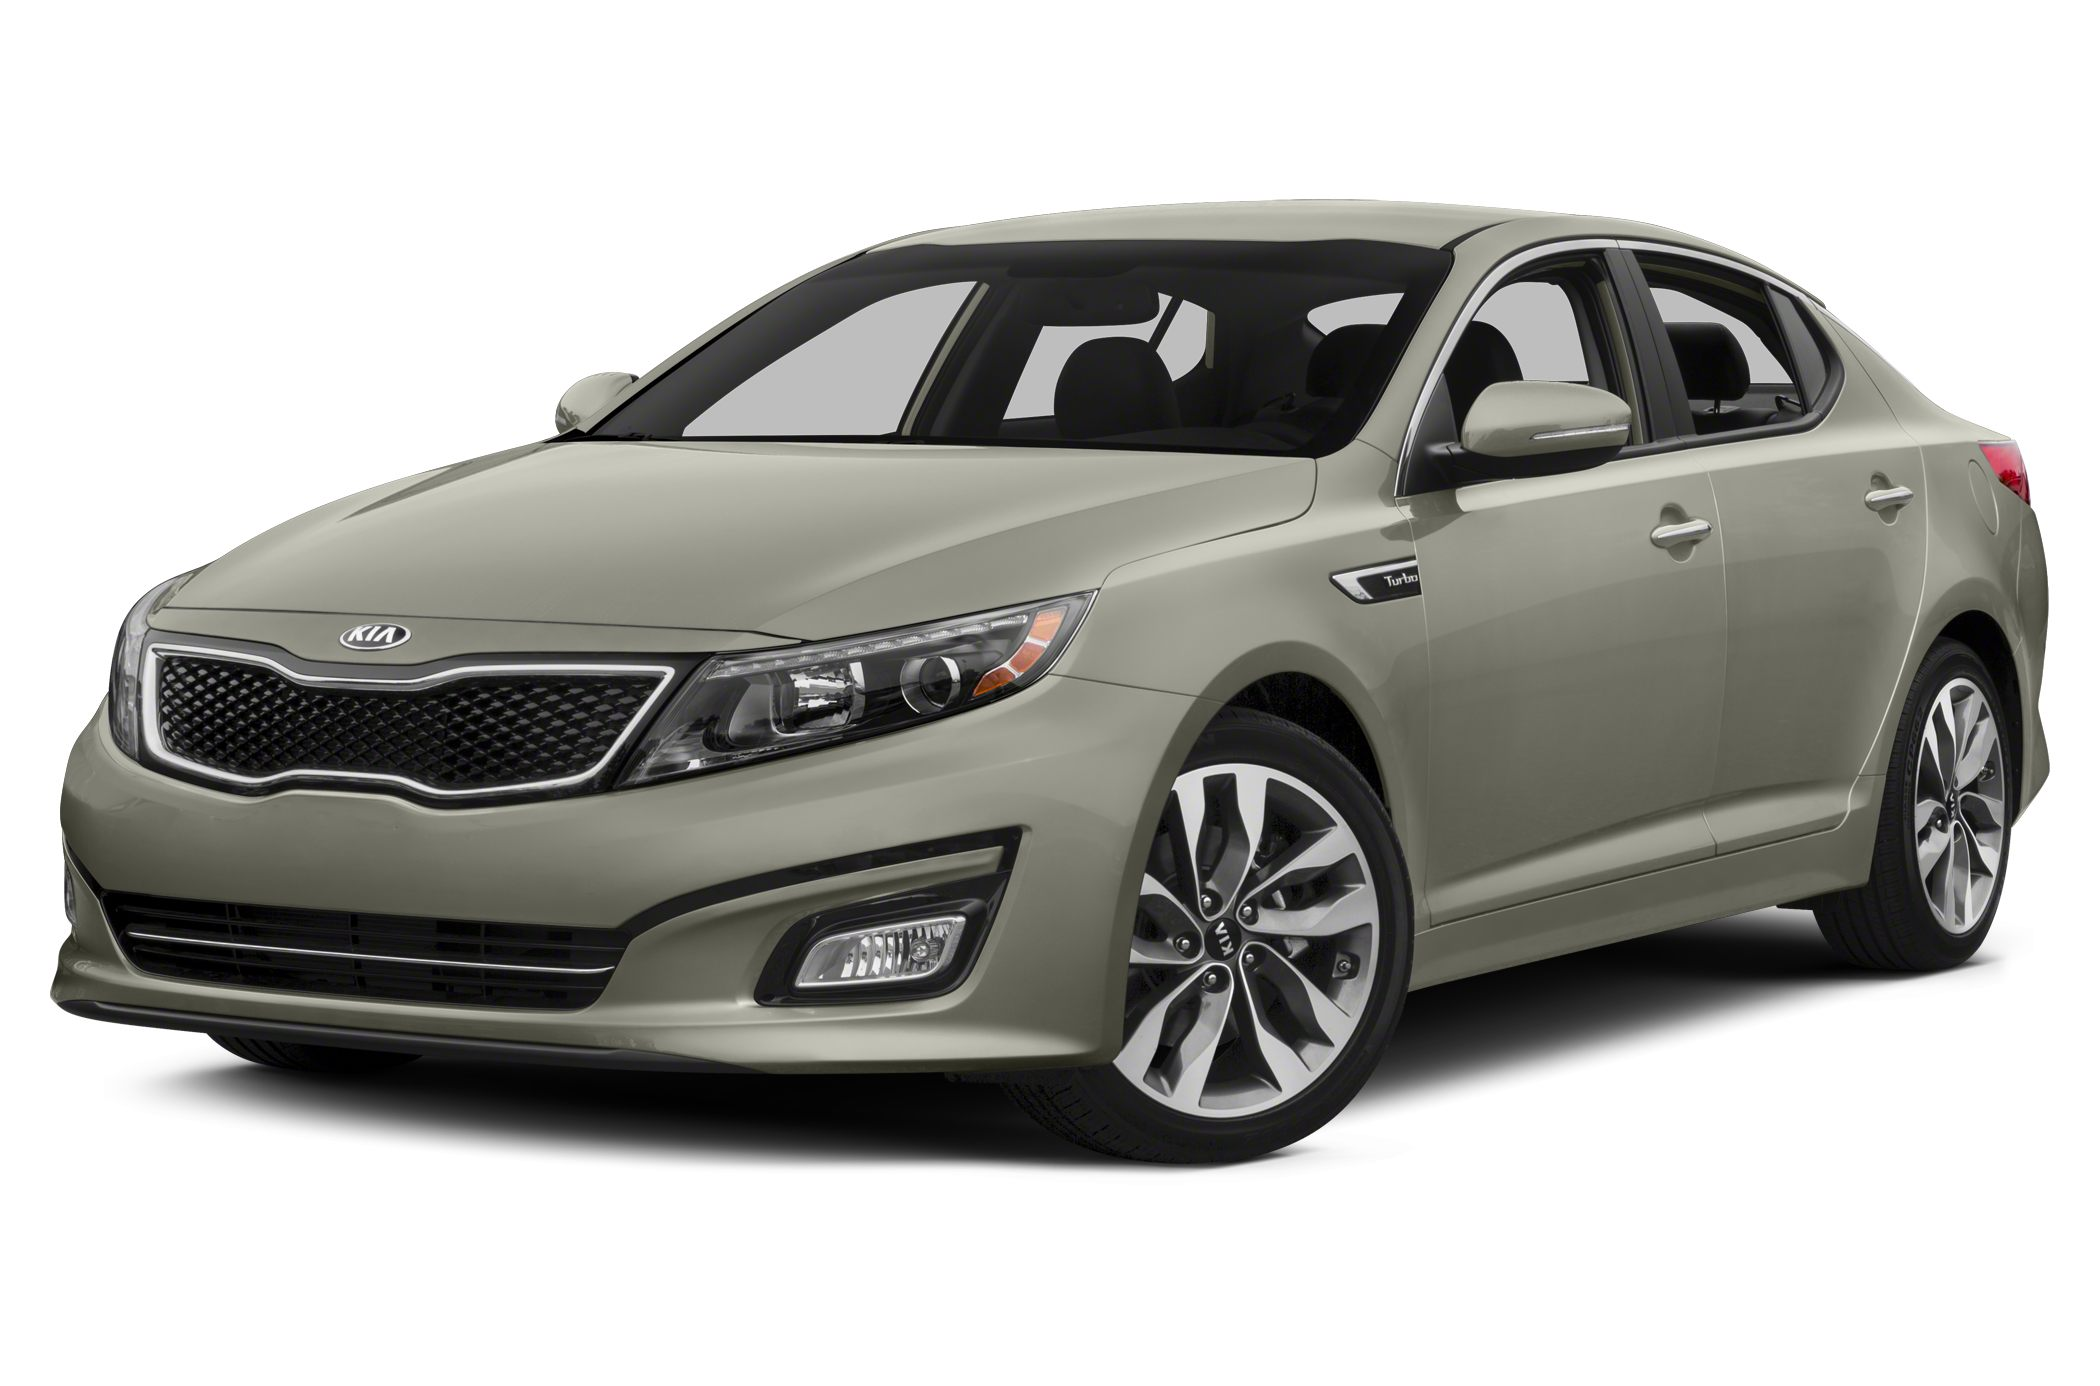 2015 Kia Optima  With world-class engineering outstanding performance and advanced safety systems